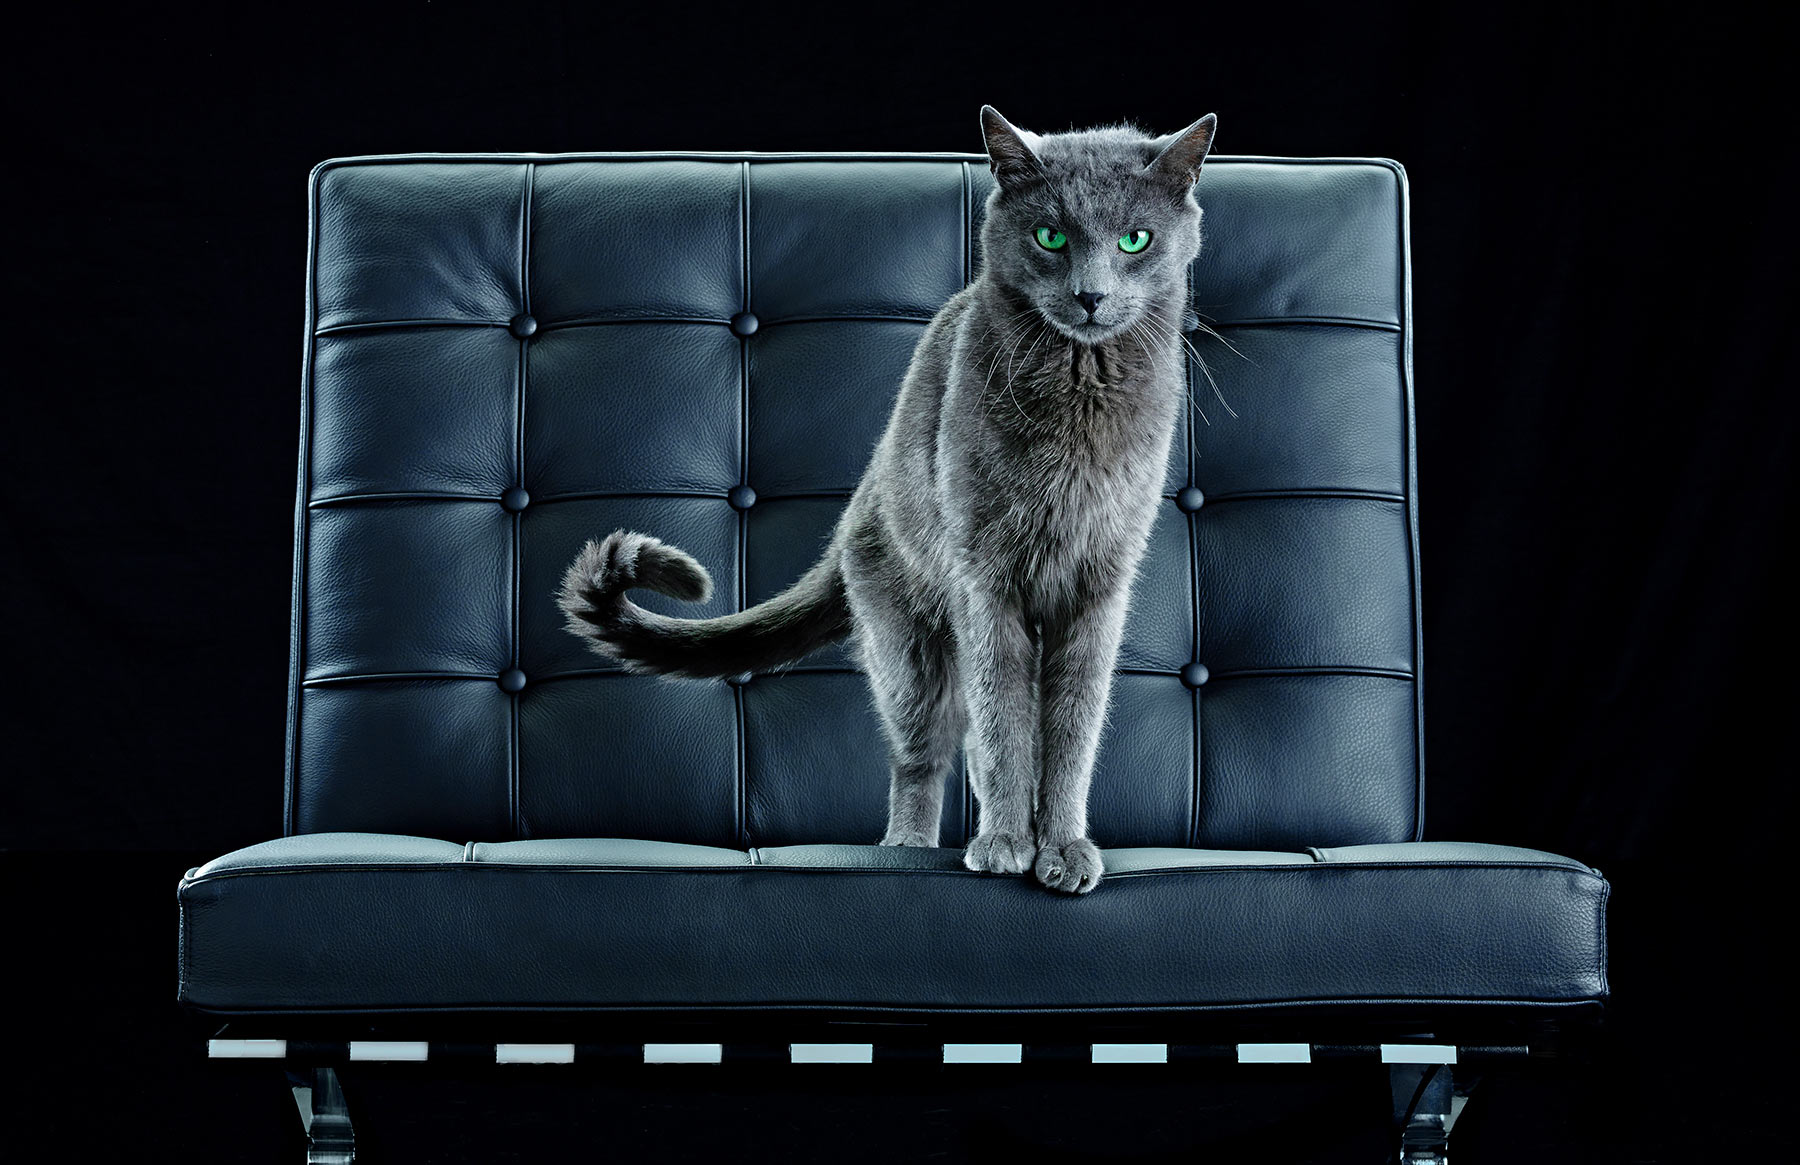 A-studio-portrait-of-a-gray-cat-with-green-eyes-standing-on-couch-against-a-black-background